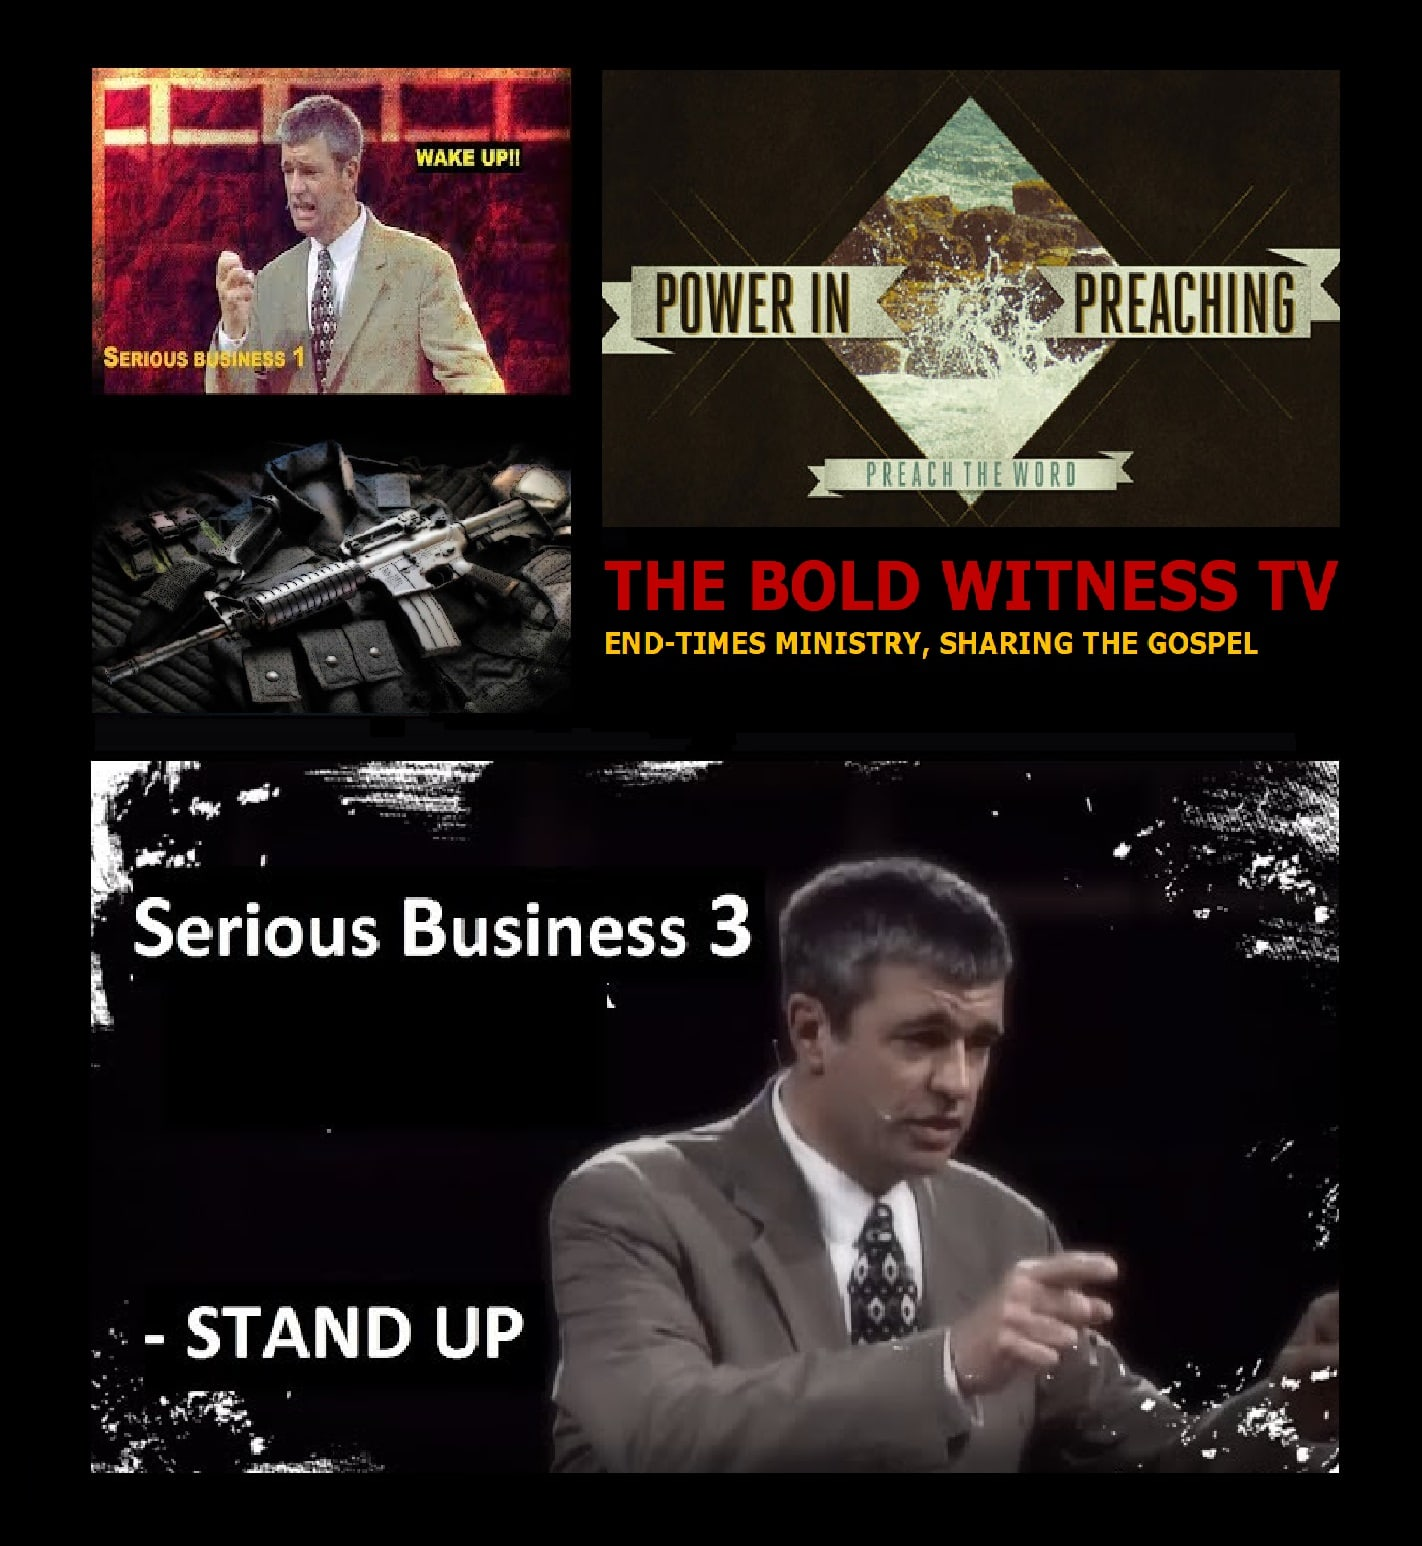 THE BOLD WITNESS TV